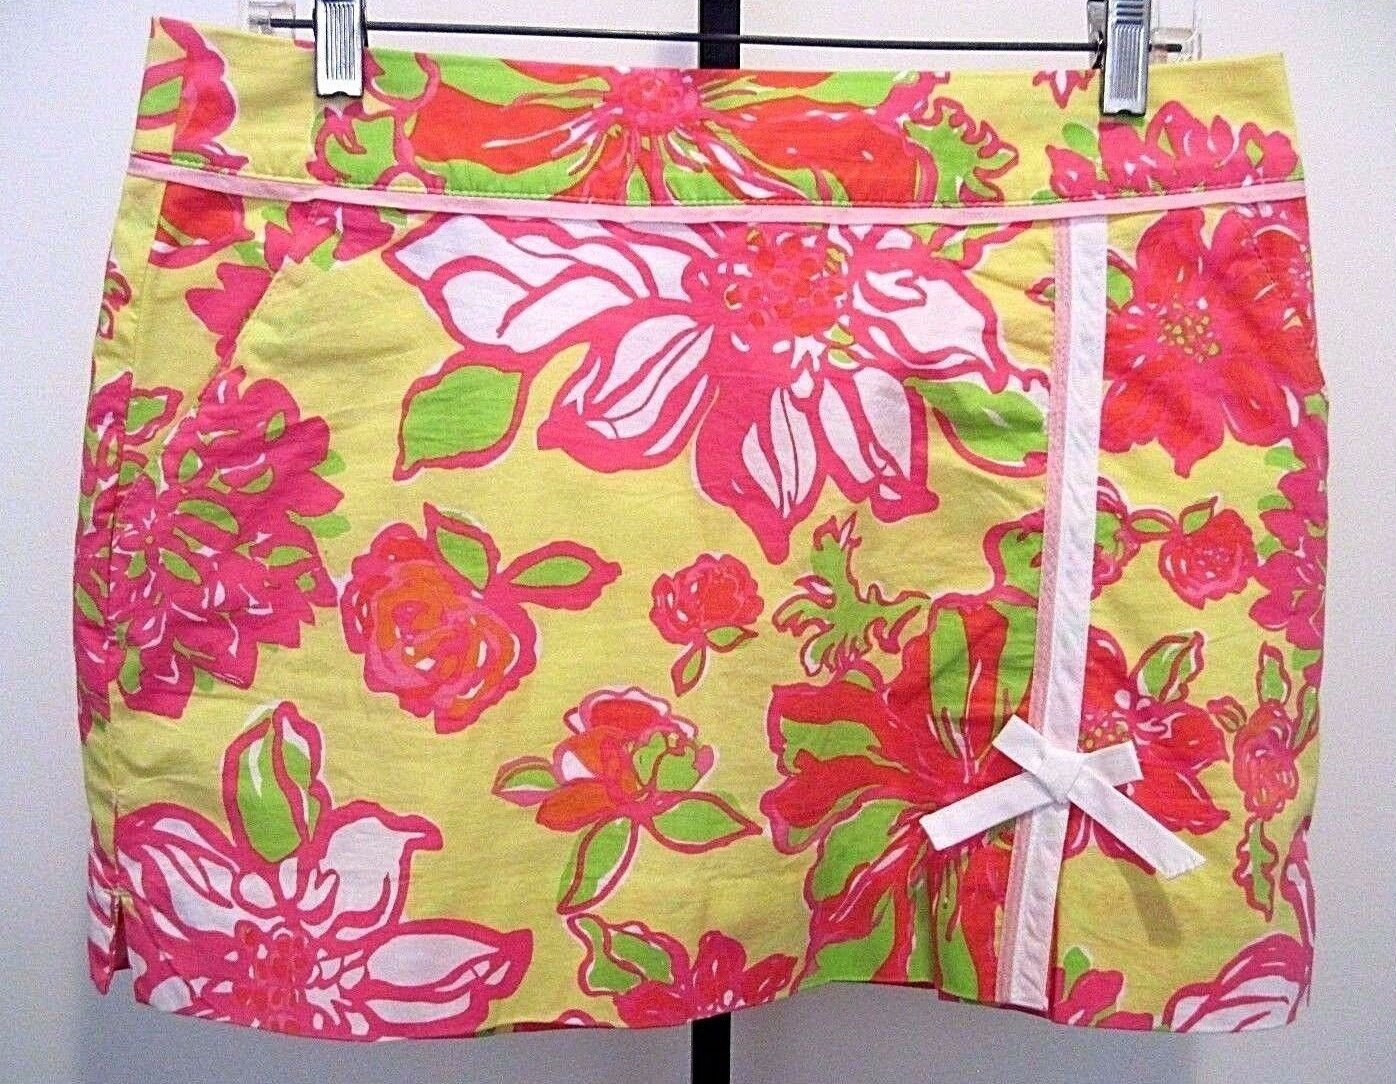 Lilly Pulitzer Women's Multicolord Floral Cotton Skorts Size 6